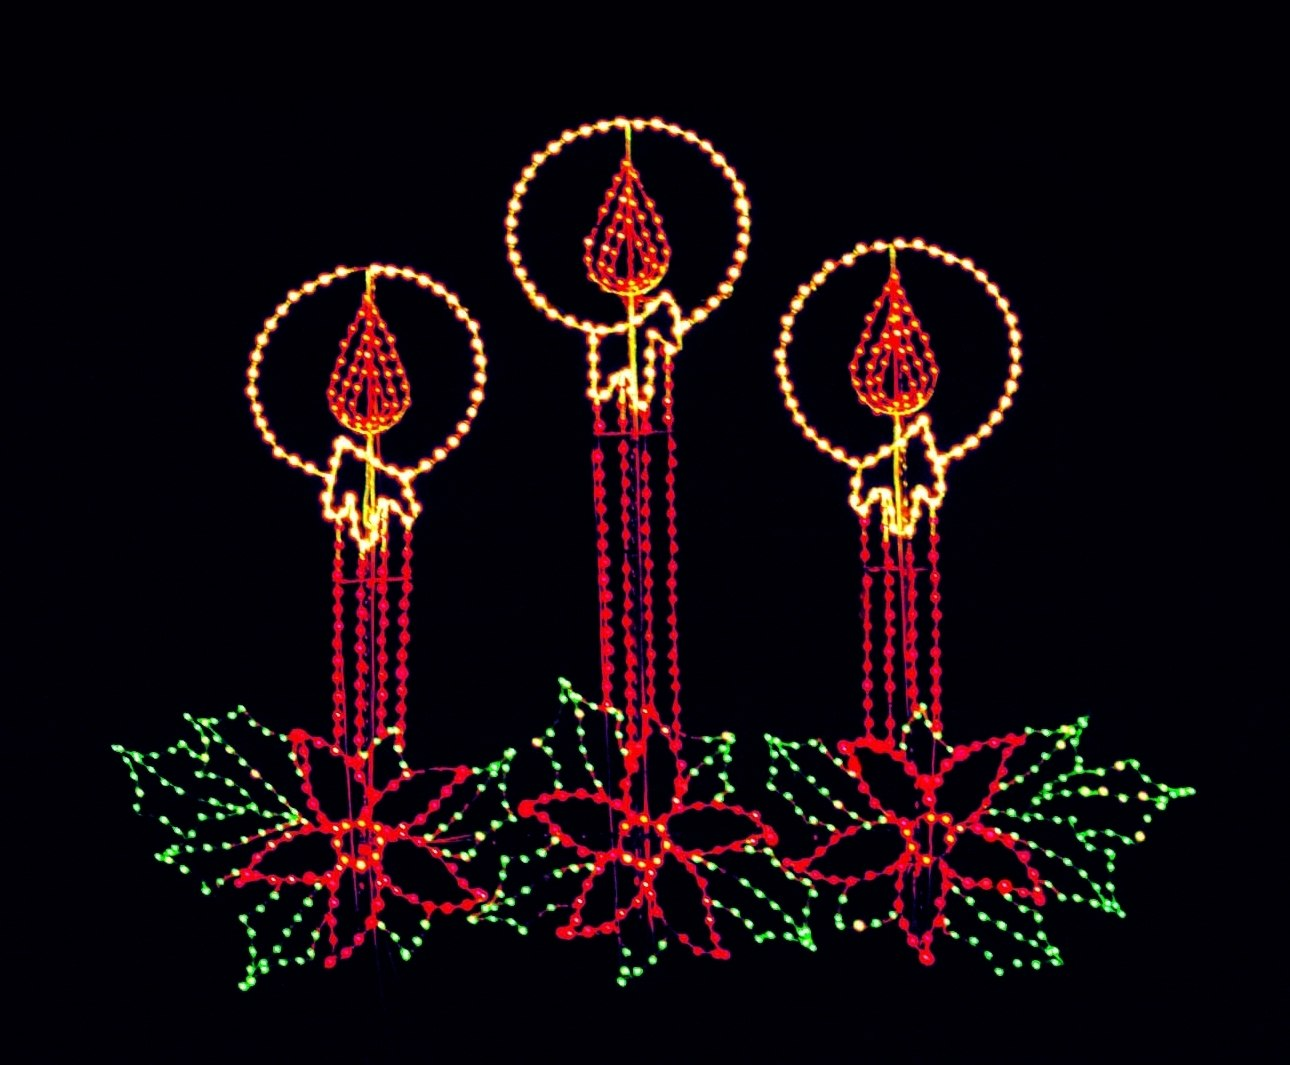 Animated Displays :: Section A | Commercial Christmas Decorations and Displays by Holiday Designs, Inc.